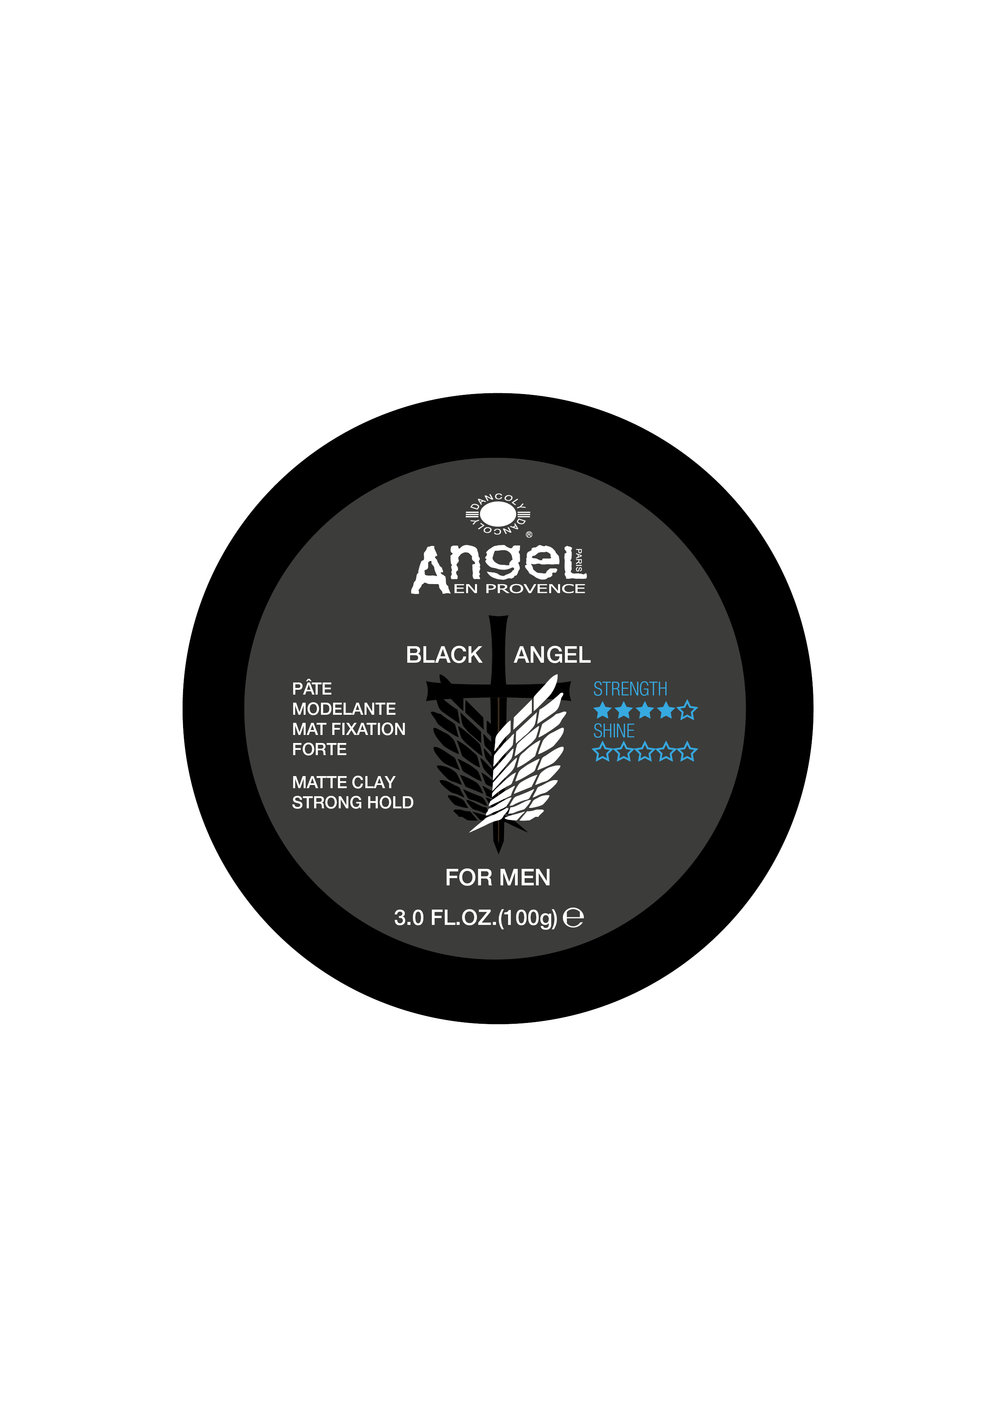 Black Angel Matte Clay Strong Hold.jpg